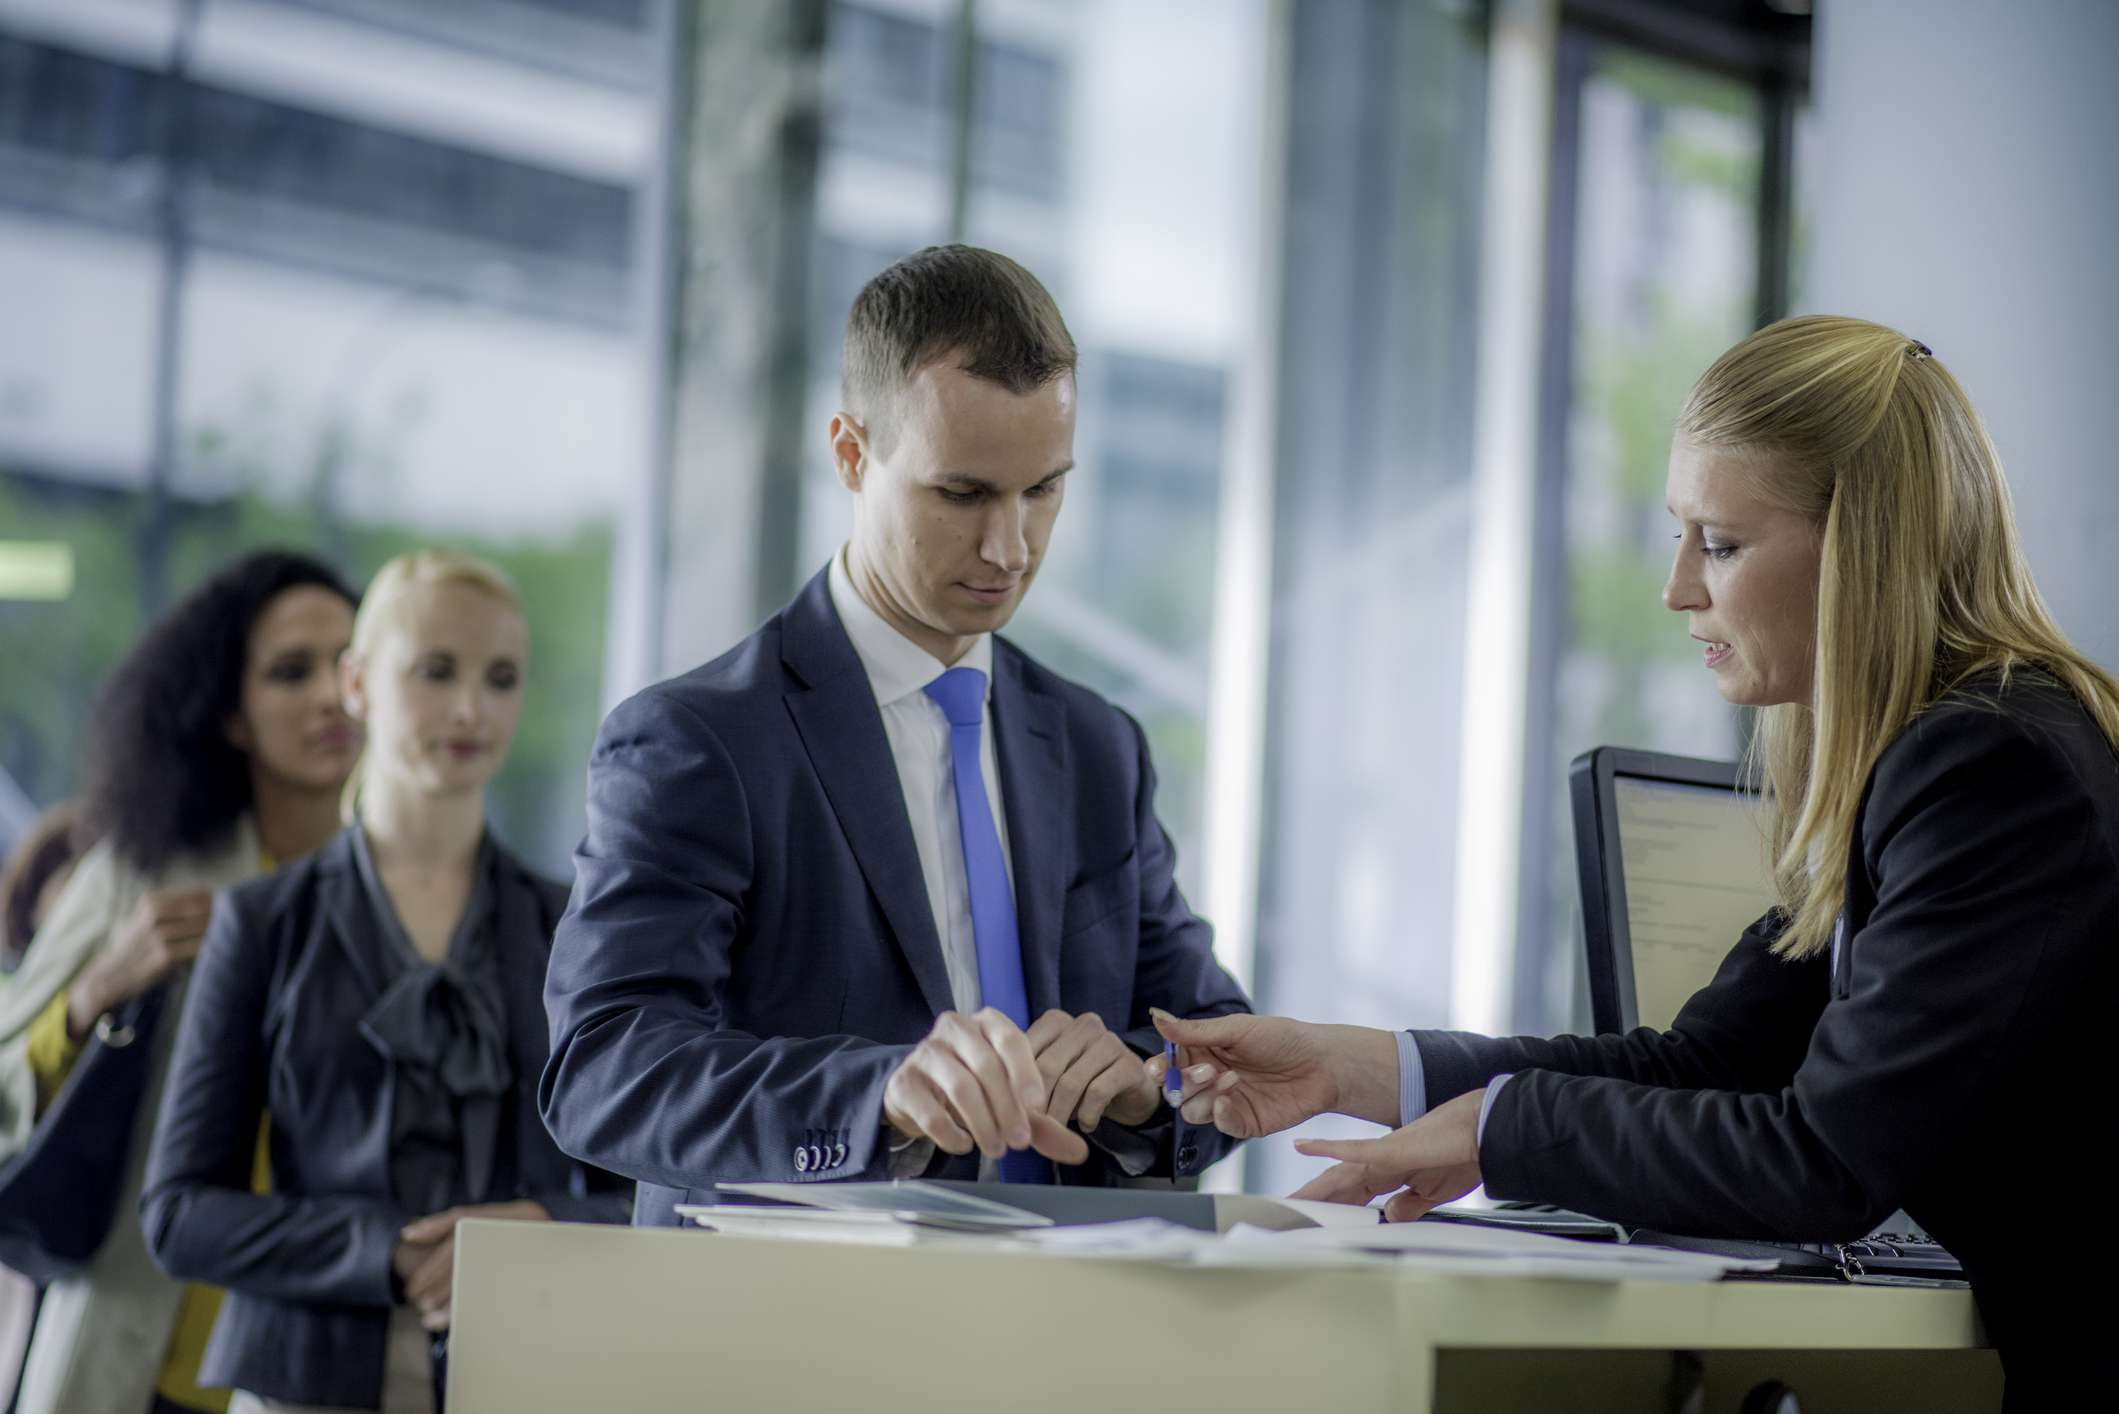 Man working with woman at bank to correct errors in his account